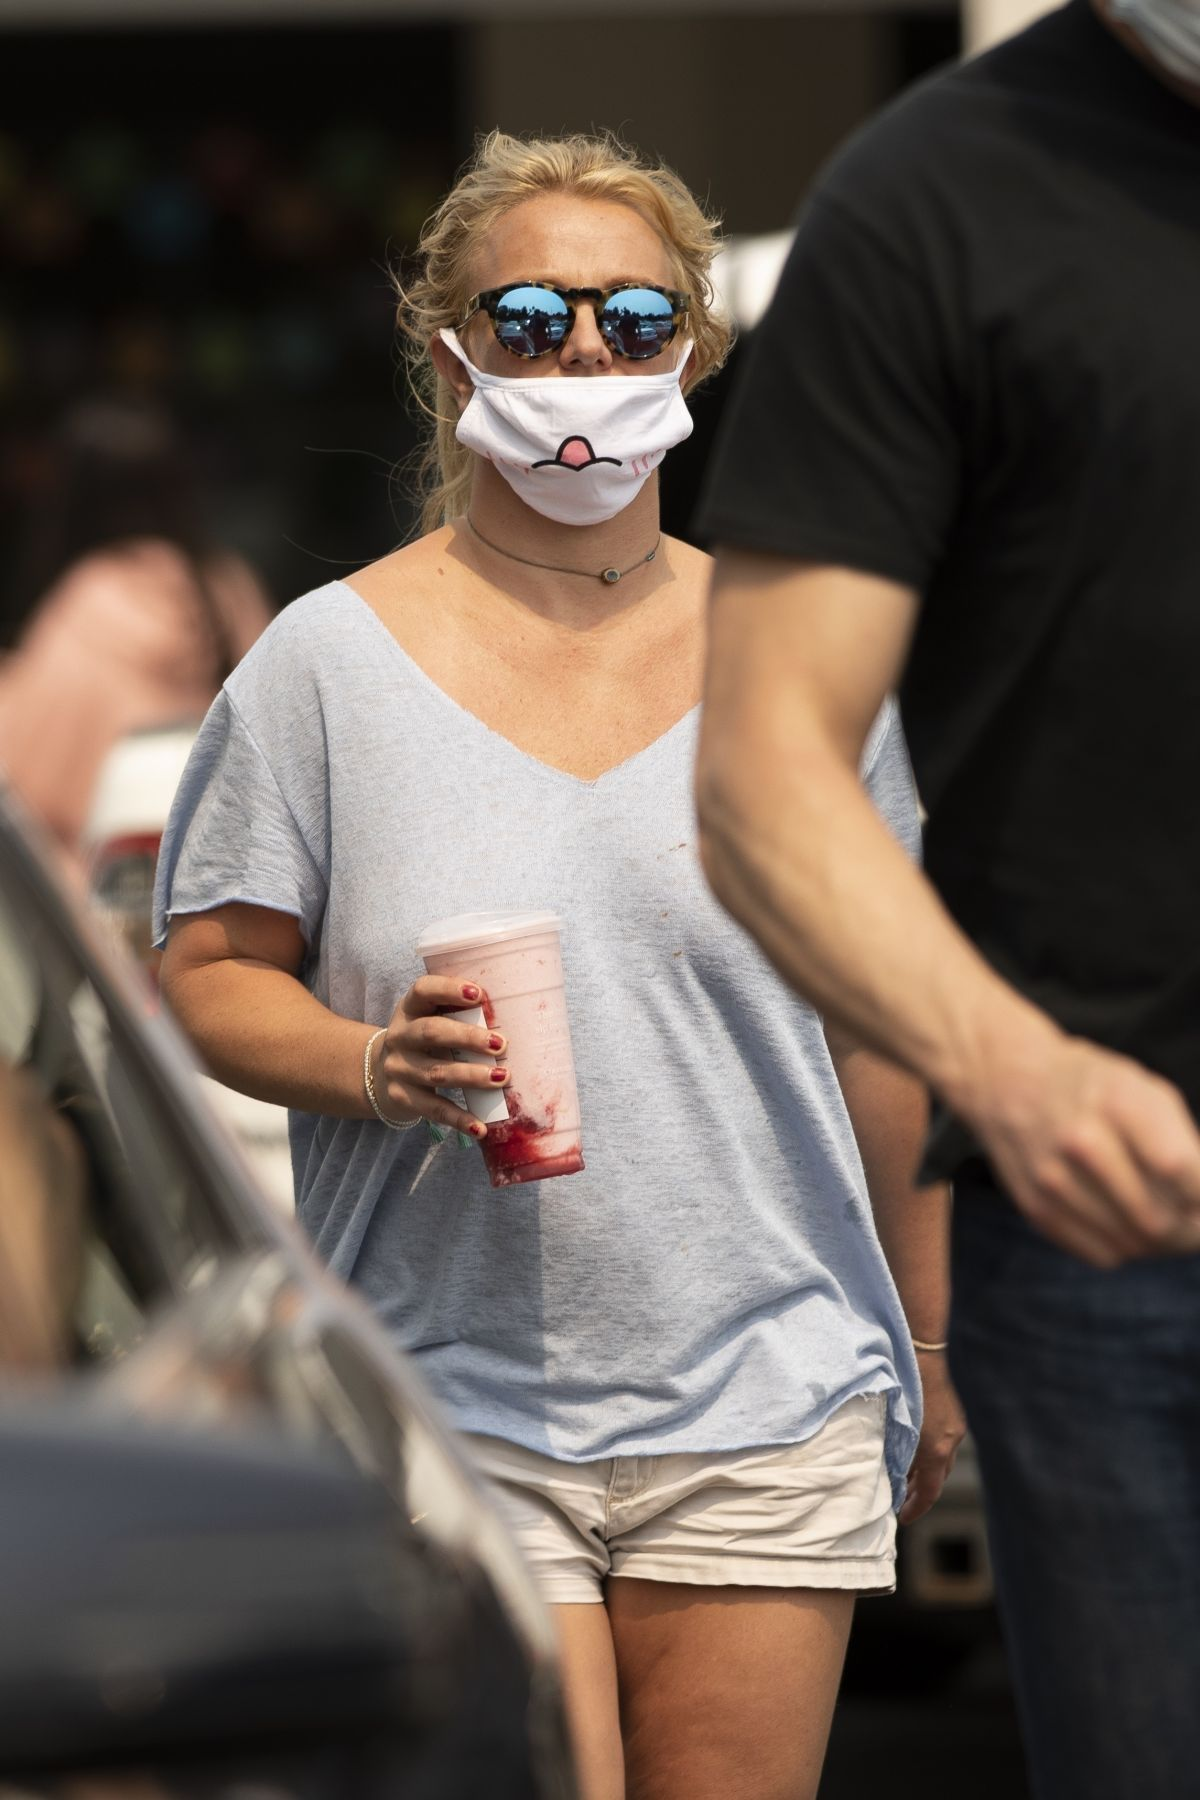 BRITNEY SPEARS Wearing a Mask Out in Calabasas 09/08/2020 ...